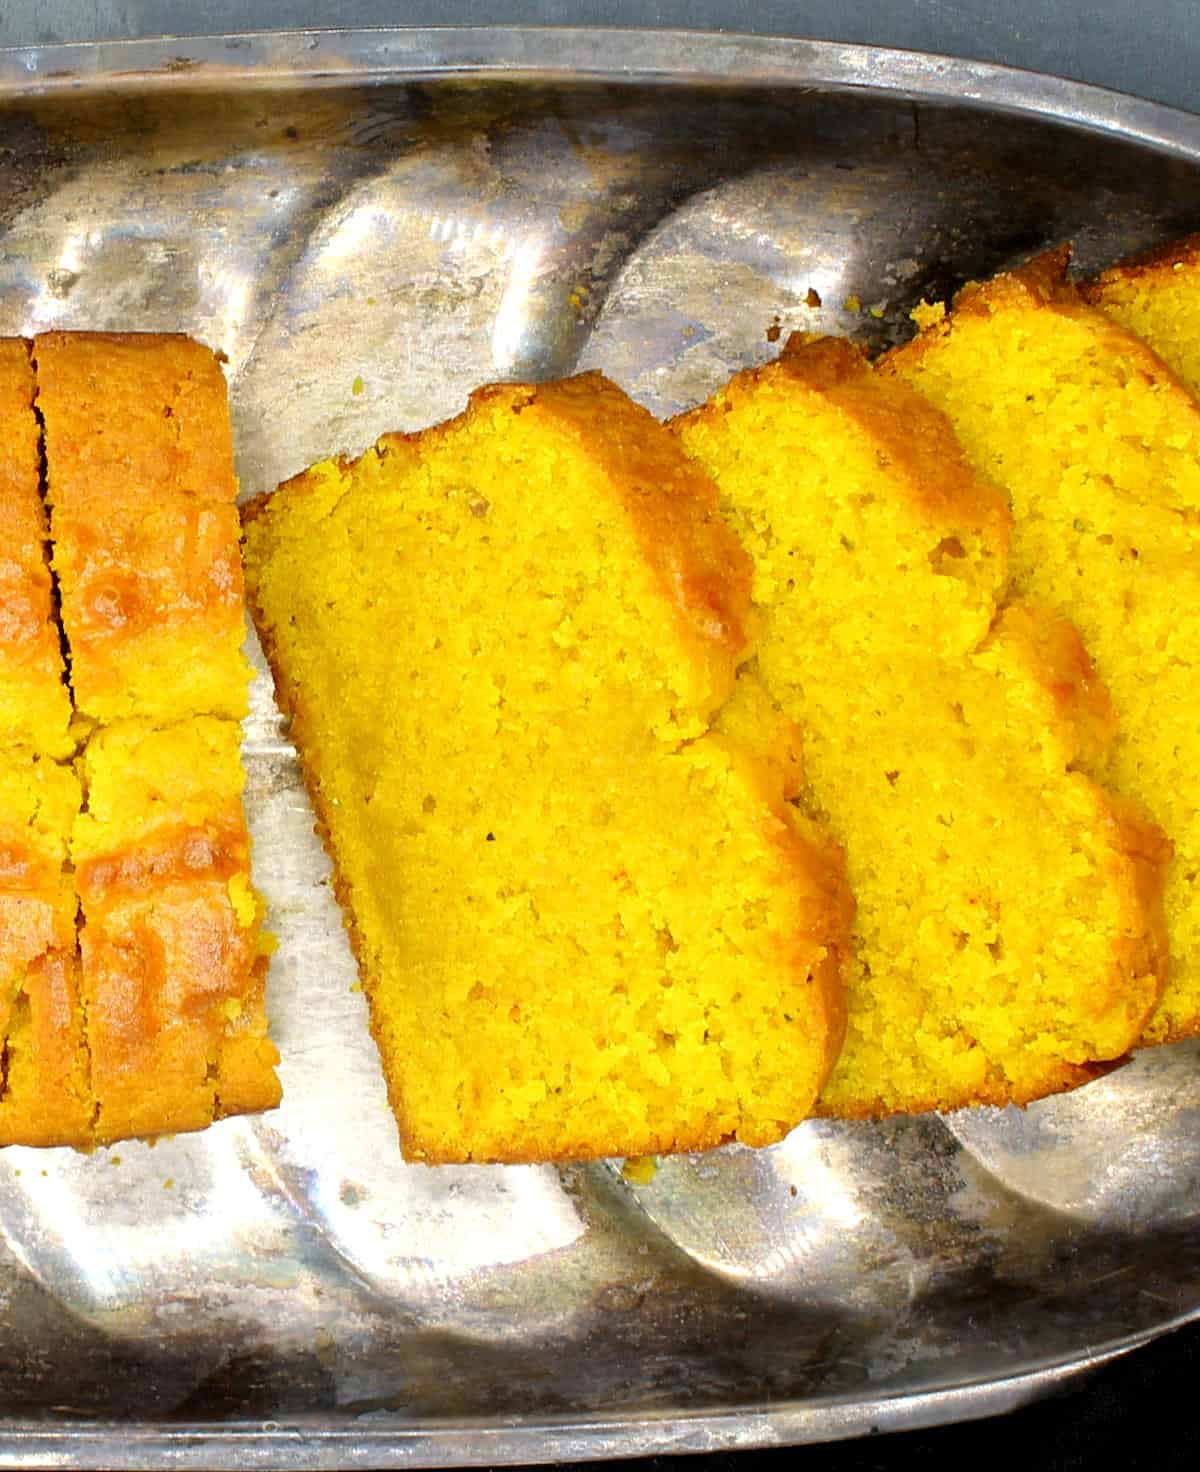 Close up of slices of vegan turmeric cake.